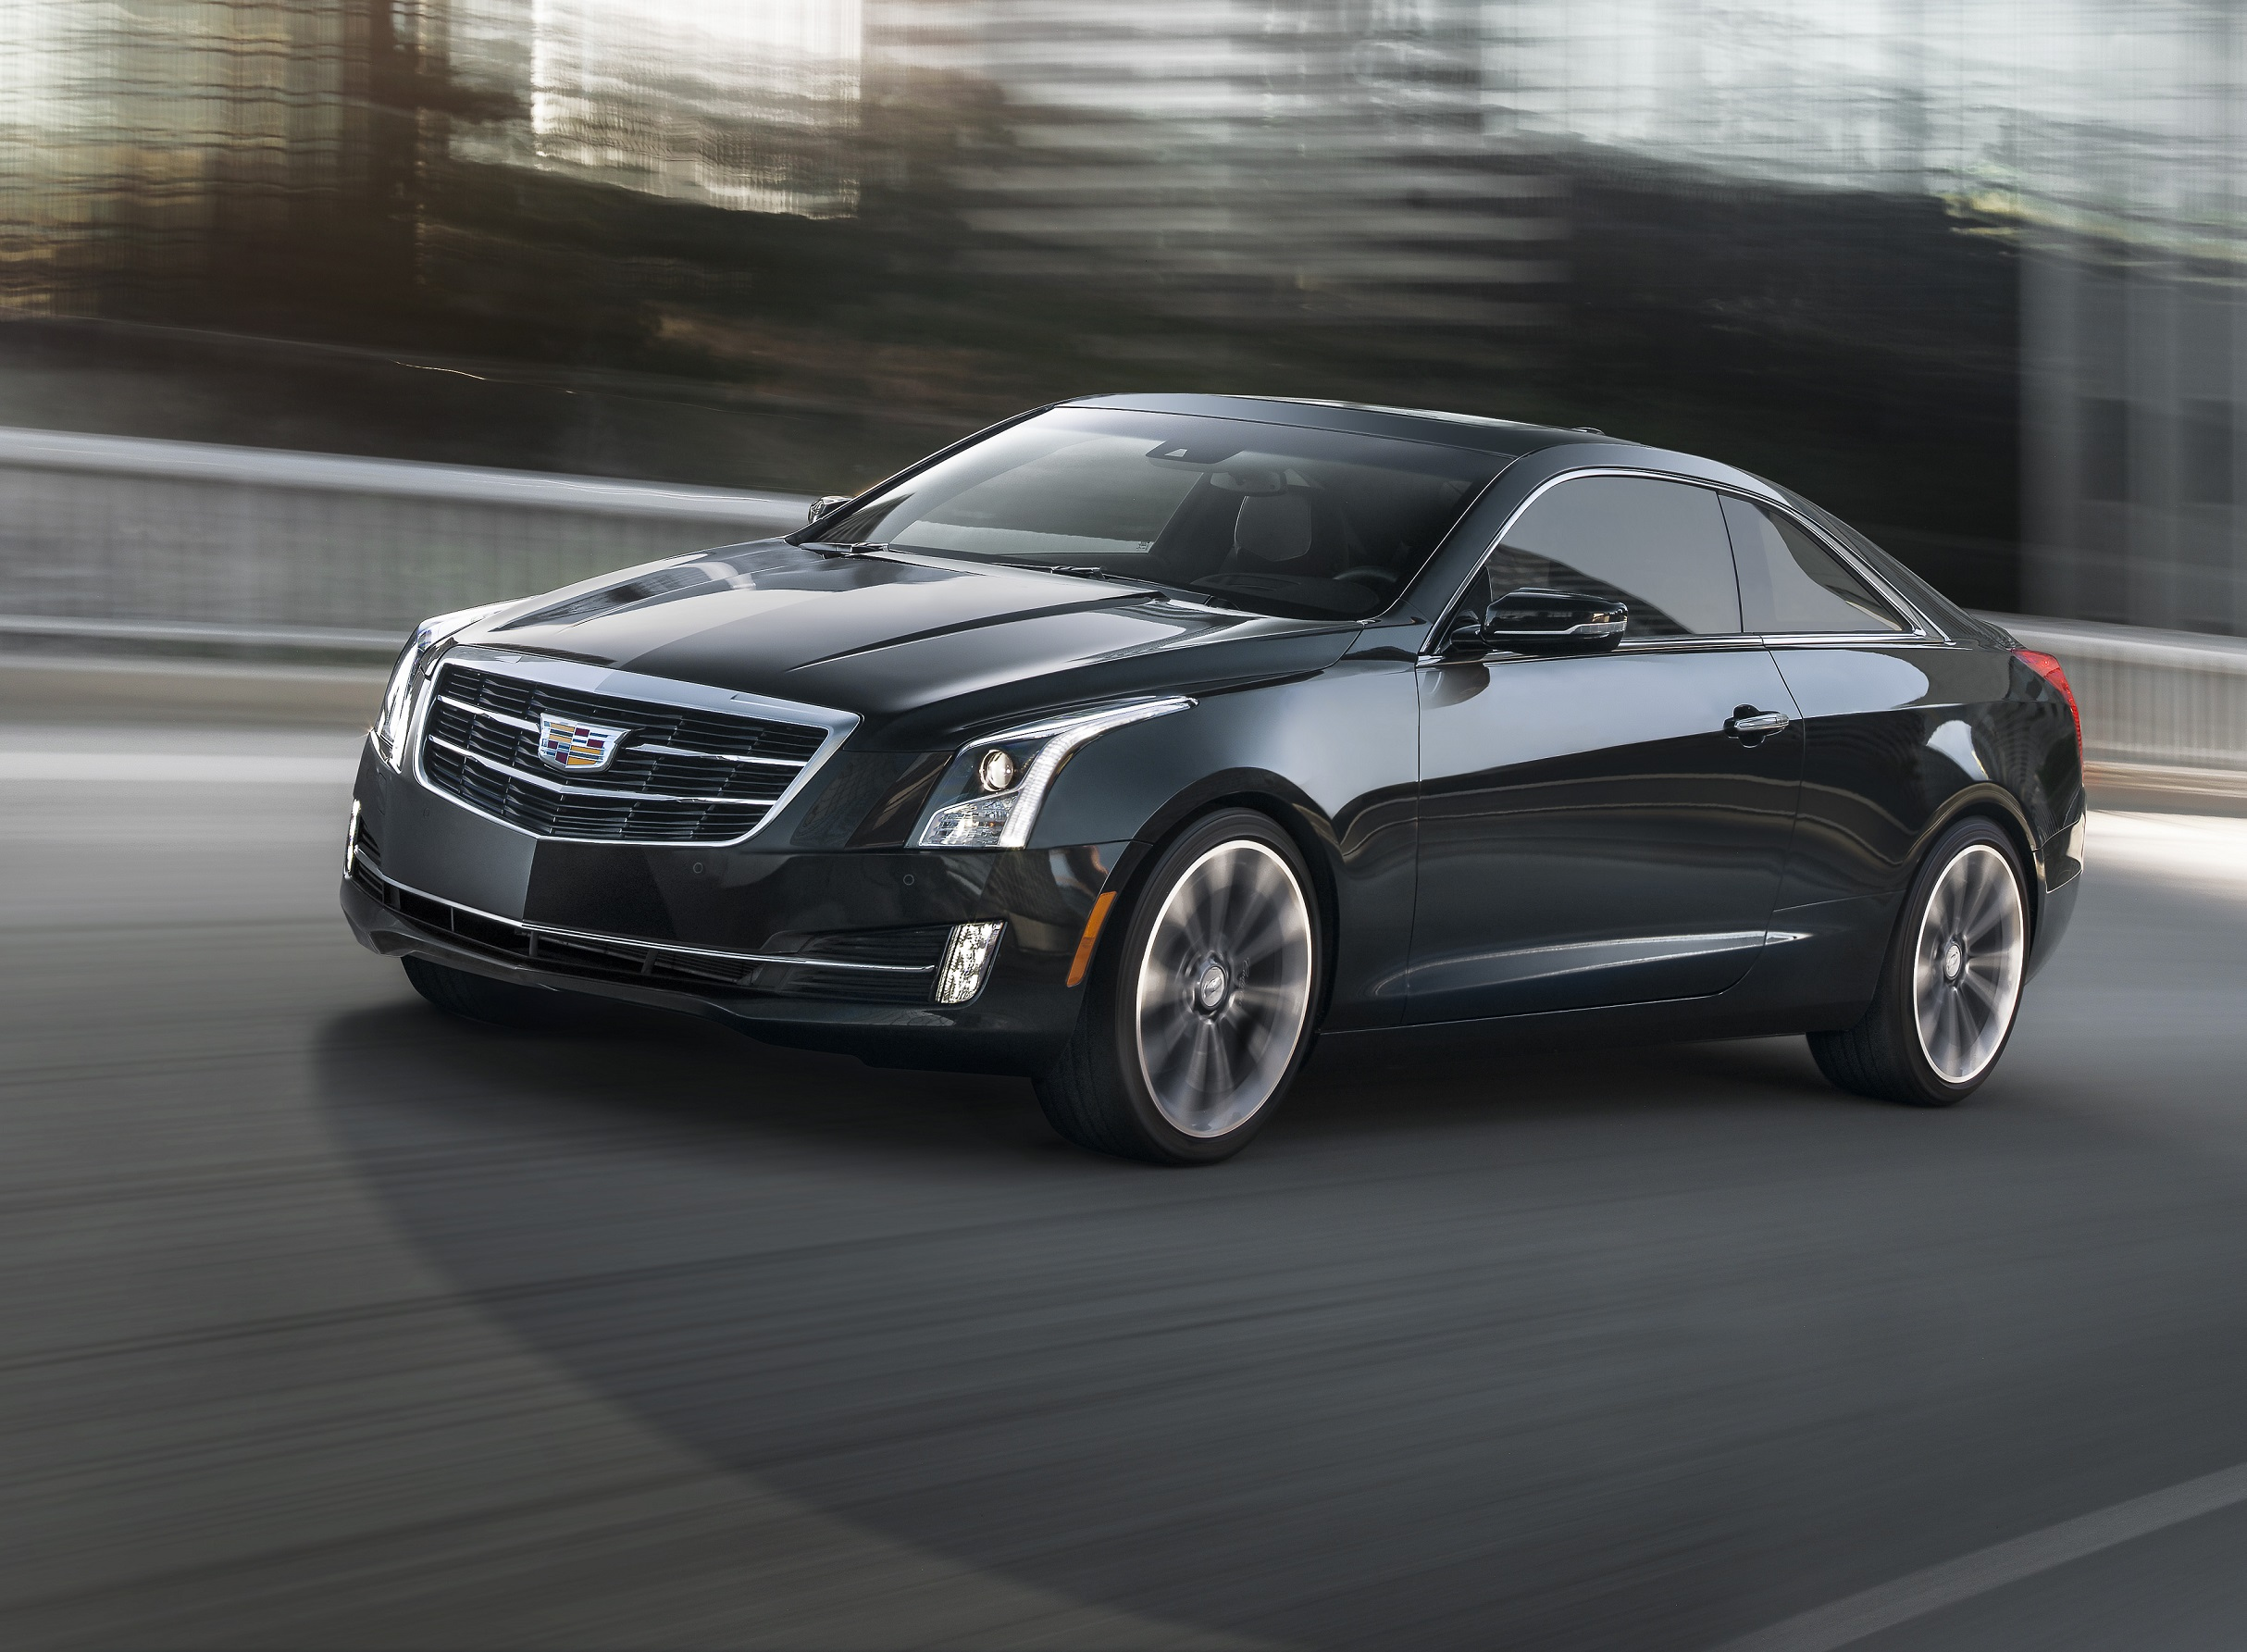 Cadillac 2019 ATS Coupe Arrives in the Middle East